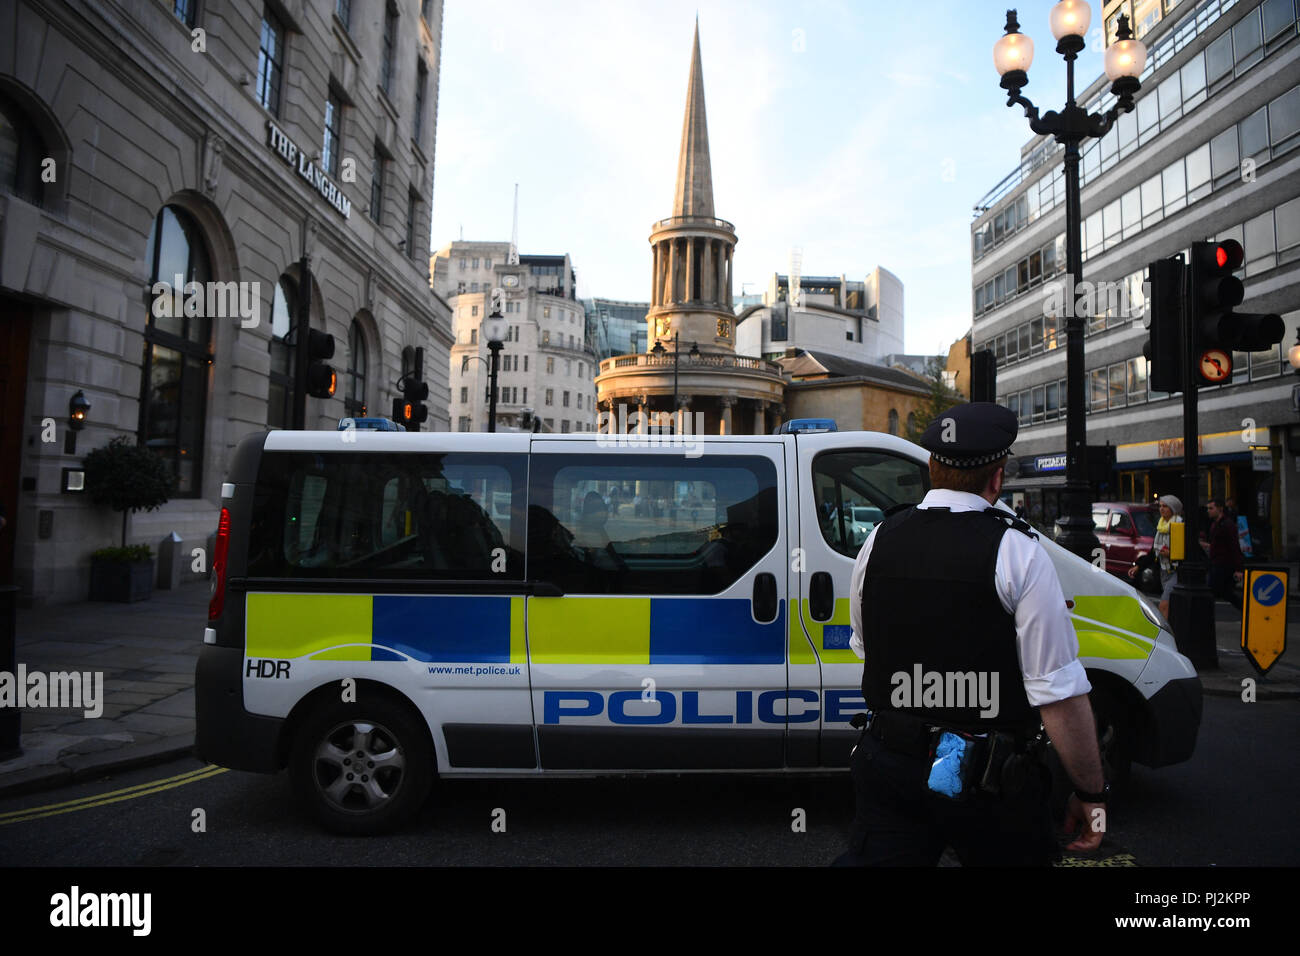 A police van outside of BBC Broadcasting House, on Portland Place, London, after reports of a specious vehicle outside the building. Stock Photo